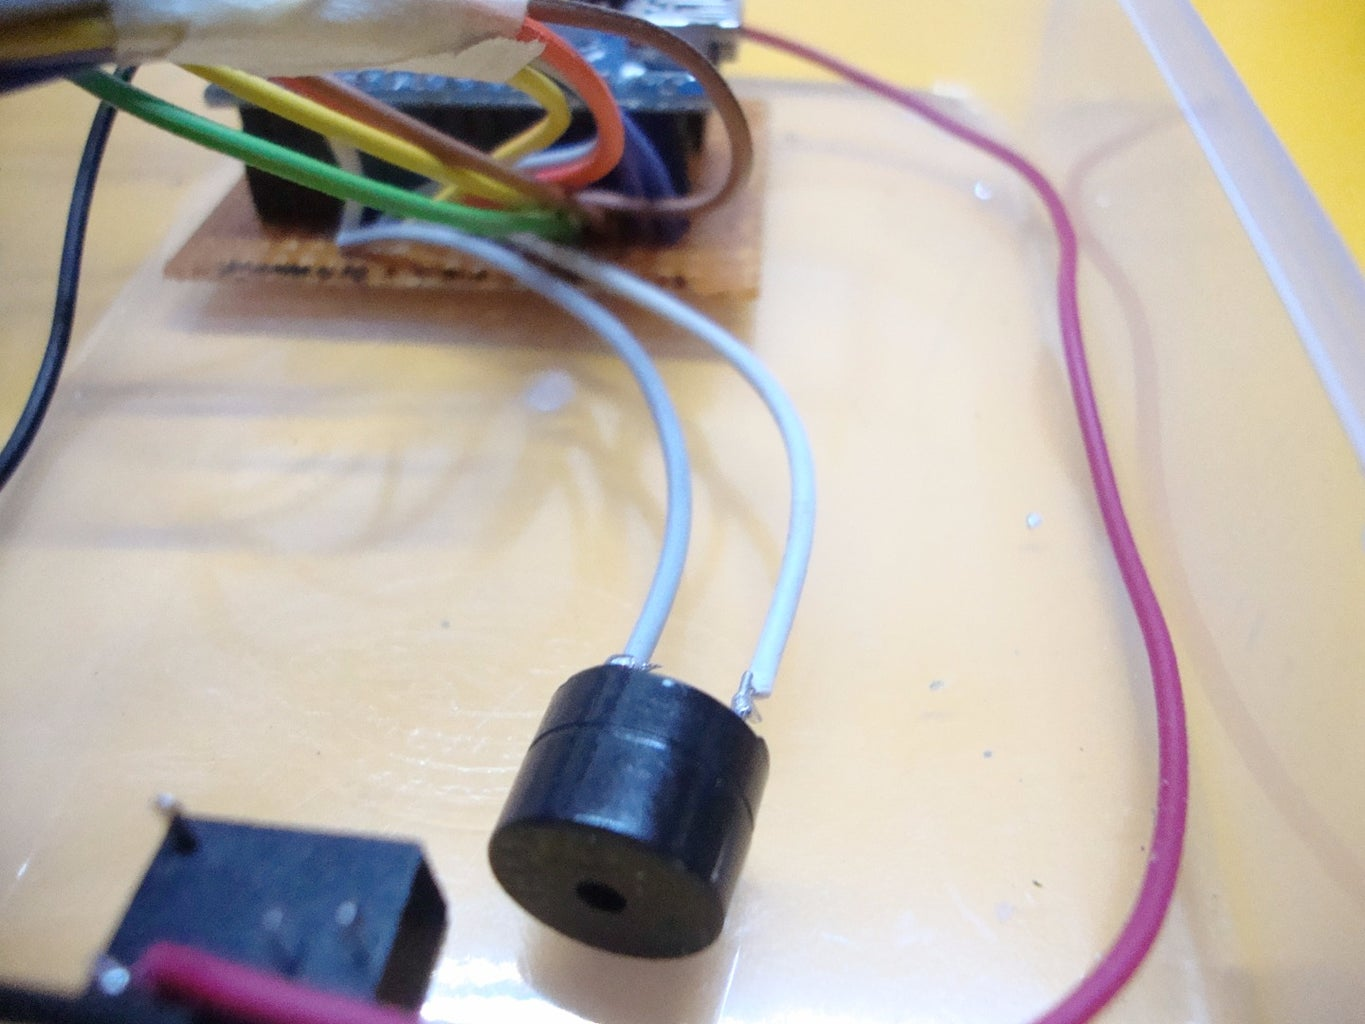 Connect the Microbuzzer